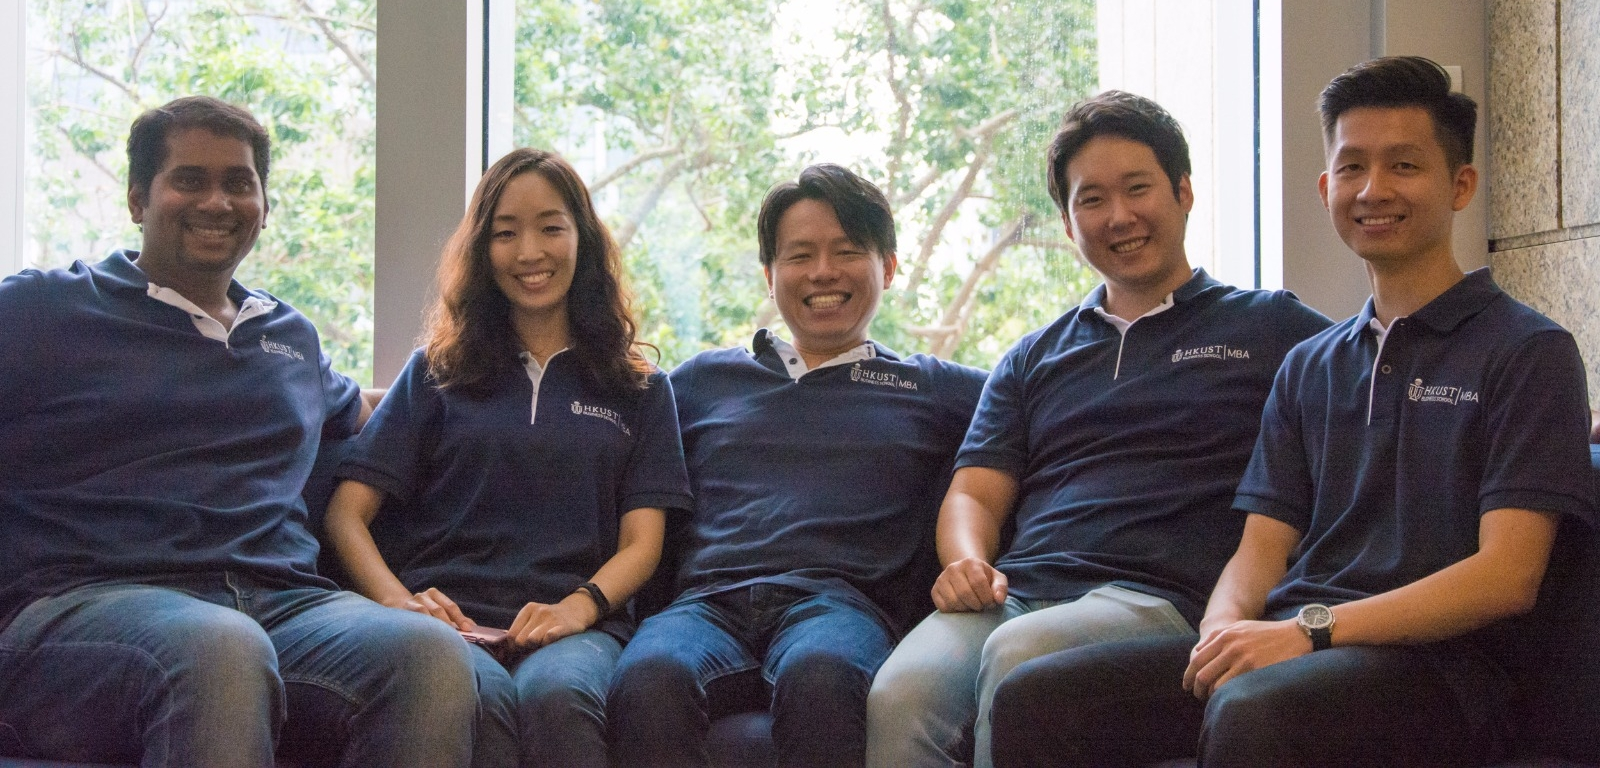 Left to Right : Ryodan Pereira (VP-Mktg.), Hyejin Lee (VP- Software Services), Yoshiaki Imanishi (El Presidente !), Eric Oh (VP-Hardware Services), William Nagata (CFO)